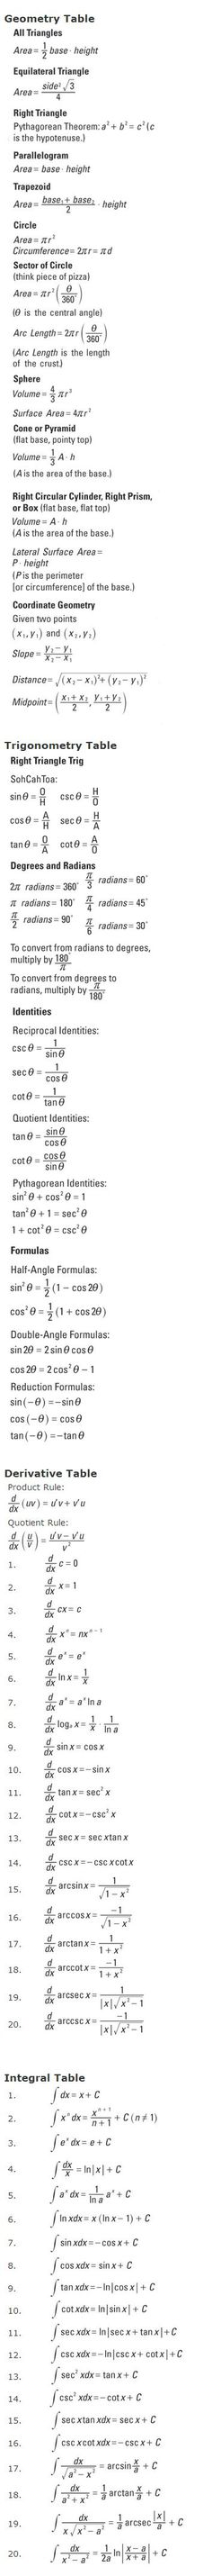 Tools & Resources: Calculus Cheat Sheet | Test Prep | CliffsNotes